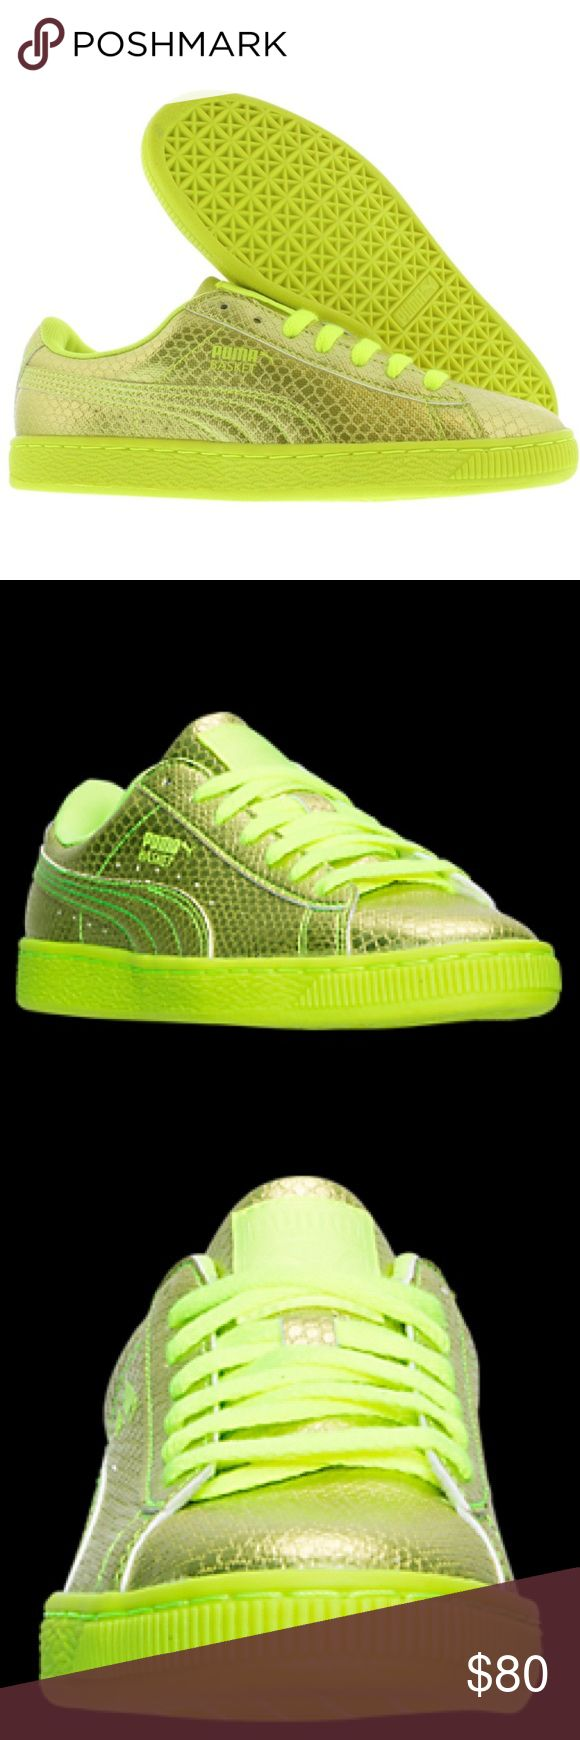 Rare Puma Creeper Basket Rihanna Sneakers 8.5BNWOB Super cute and vibrant Puma Sneakers! Stand out with these gold/neon yellow (highlighter yellow) Pumas! Brand New and never worn. Puma Shoes Sneakers